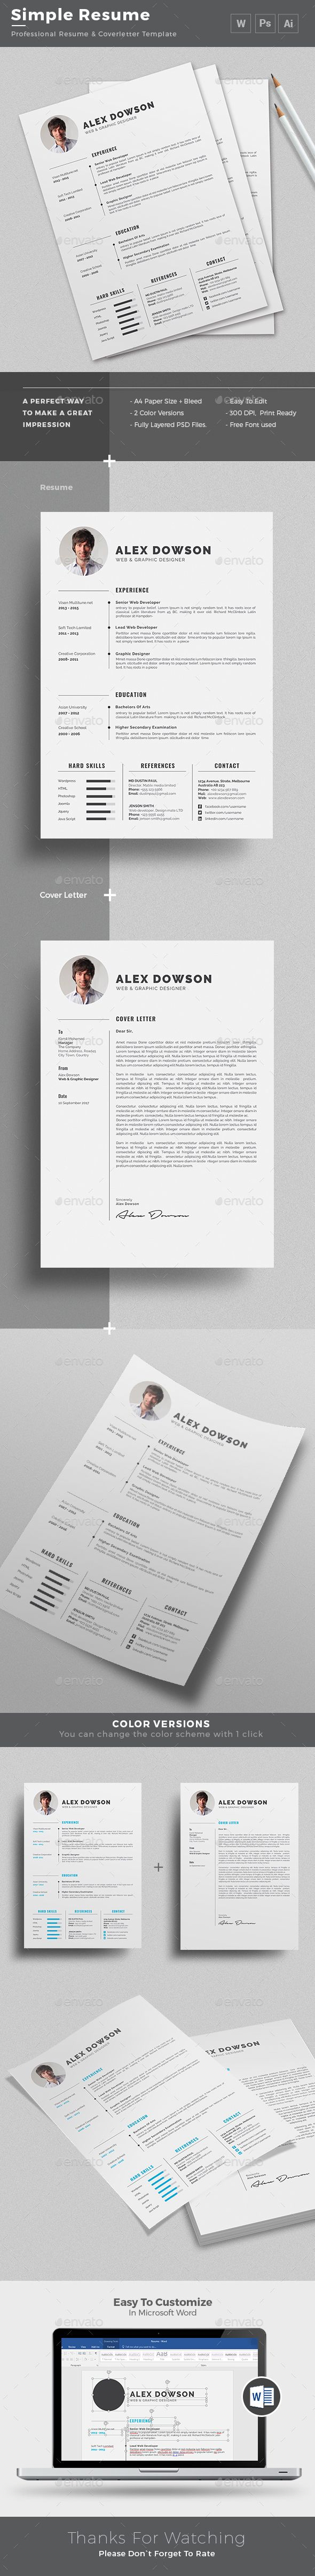 best ideas about cover letter templates 17 best ideas about cover letter templates creative cv design cv design and curriculum